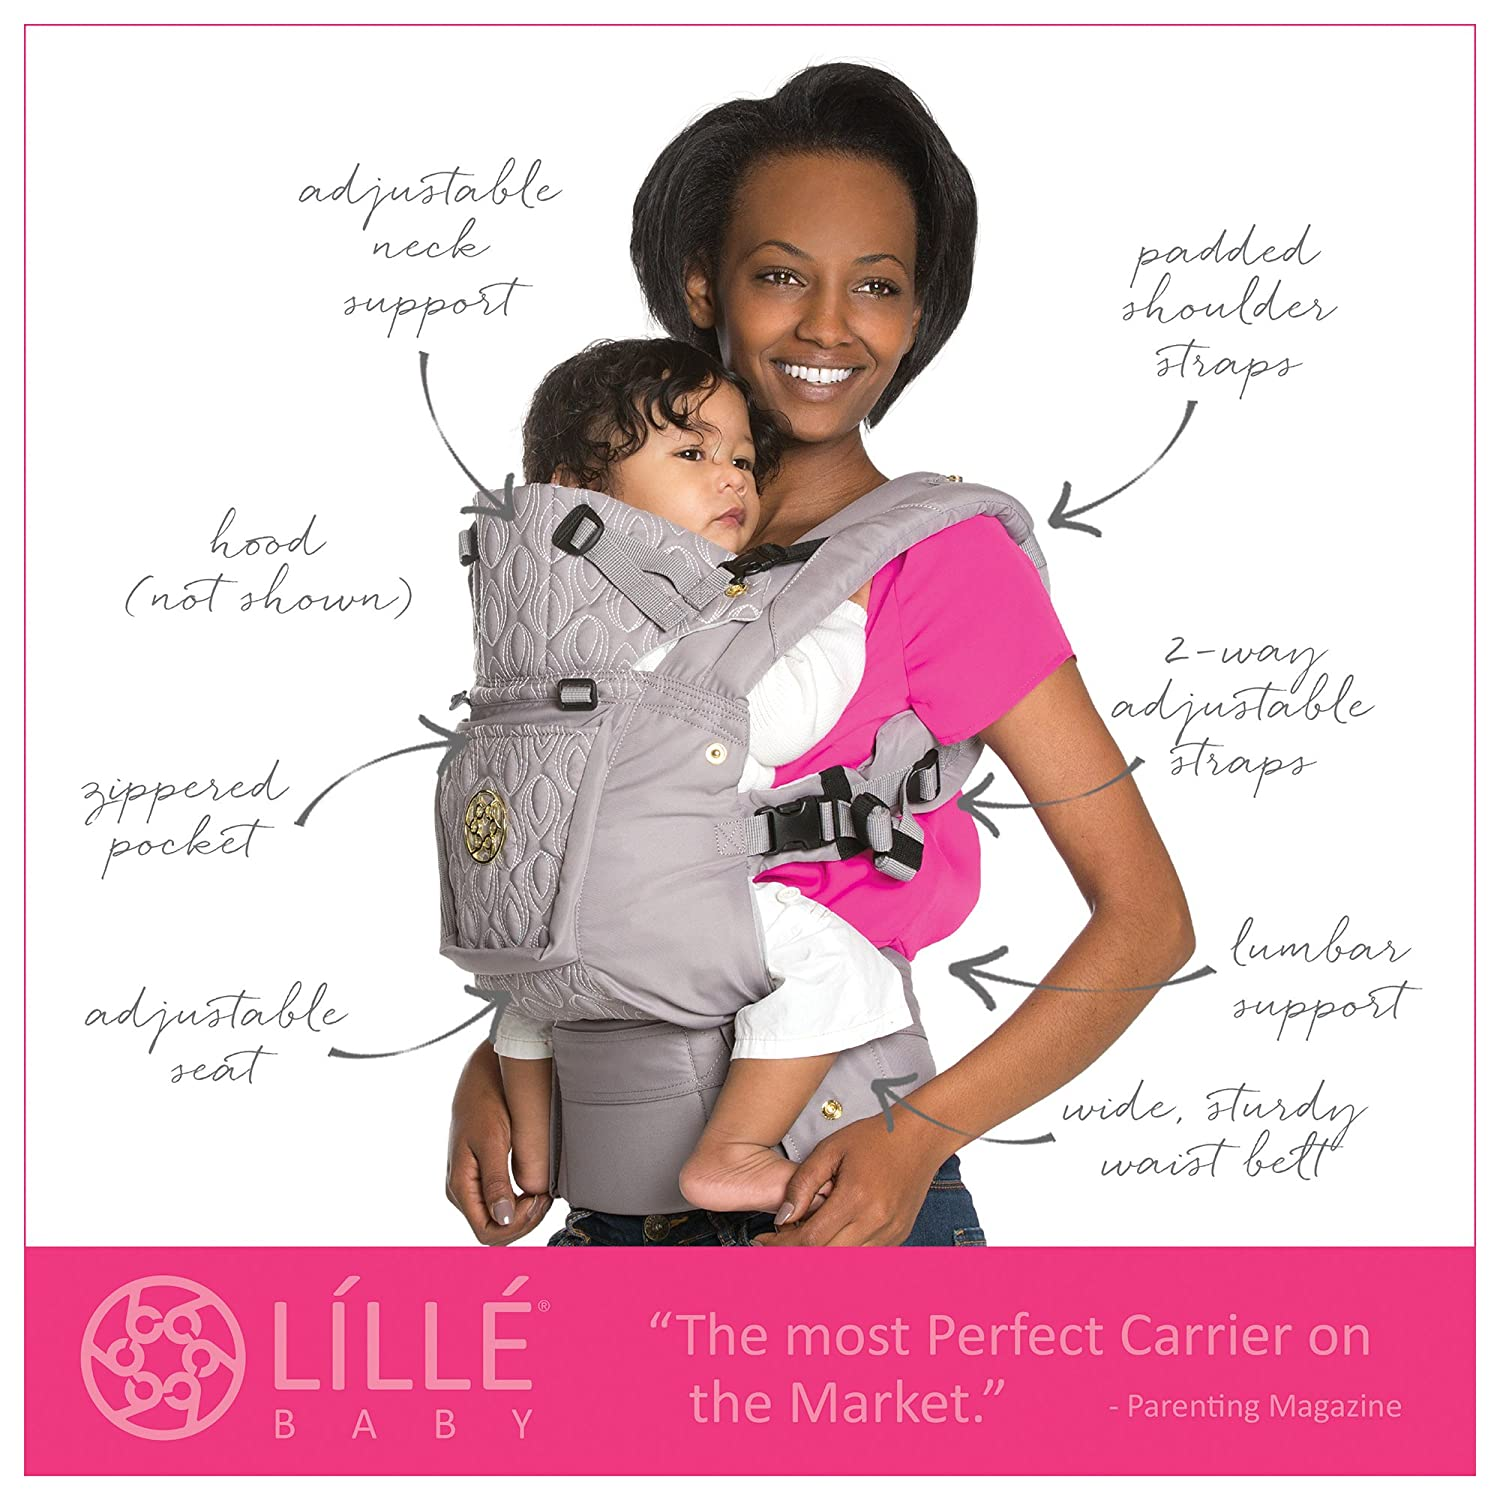 Amazon.com : LÍLLÉbaby The COMPLETE Embossed SIX-Position 360° Ergonomic Baby & Child Carrier, Citrus - Cotton Baby Carrier, Ergonomic Multi-Position ...